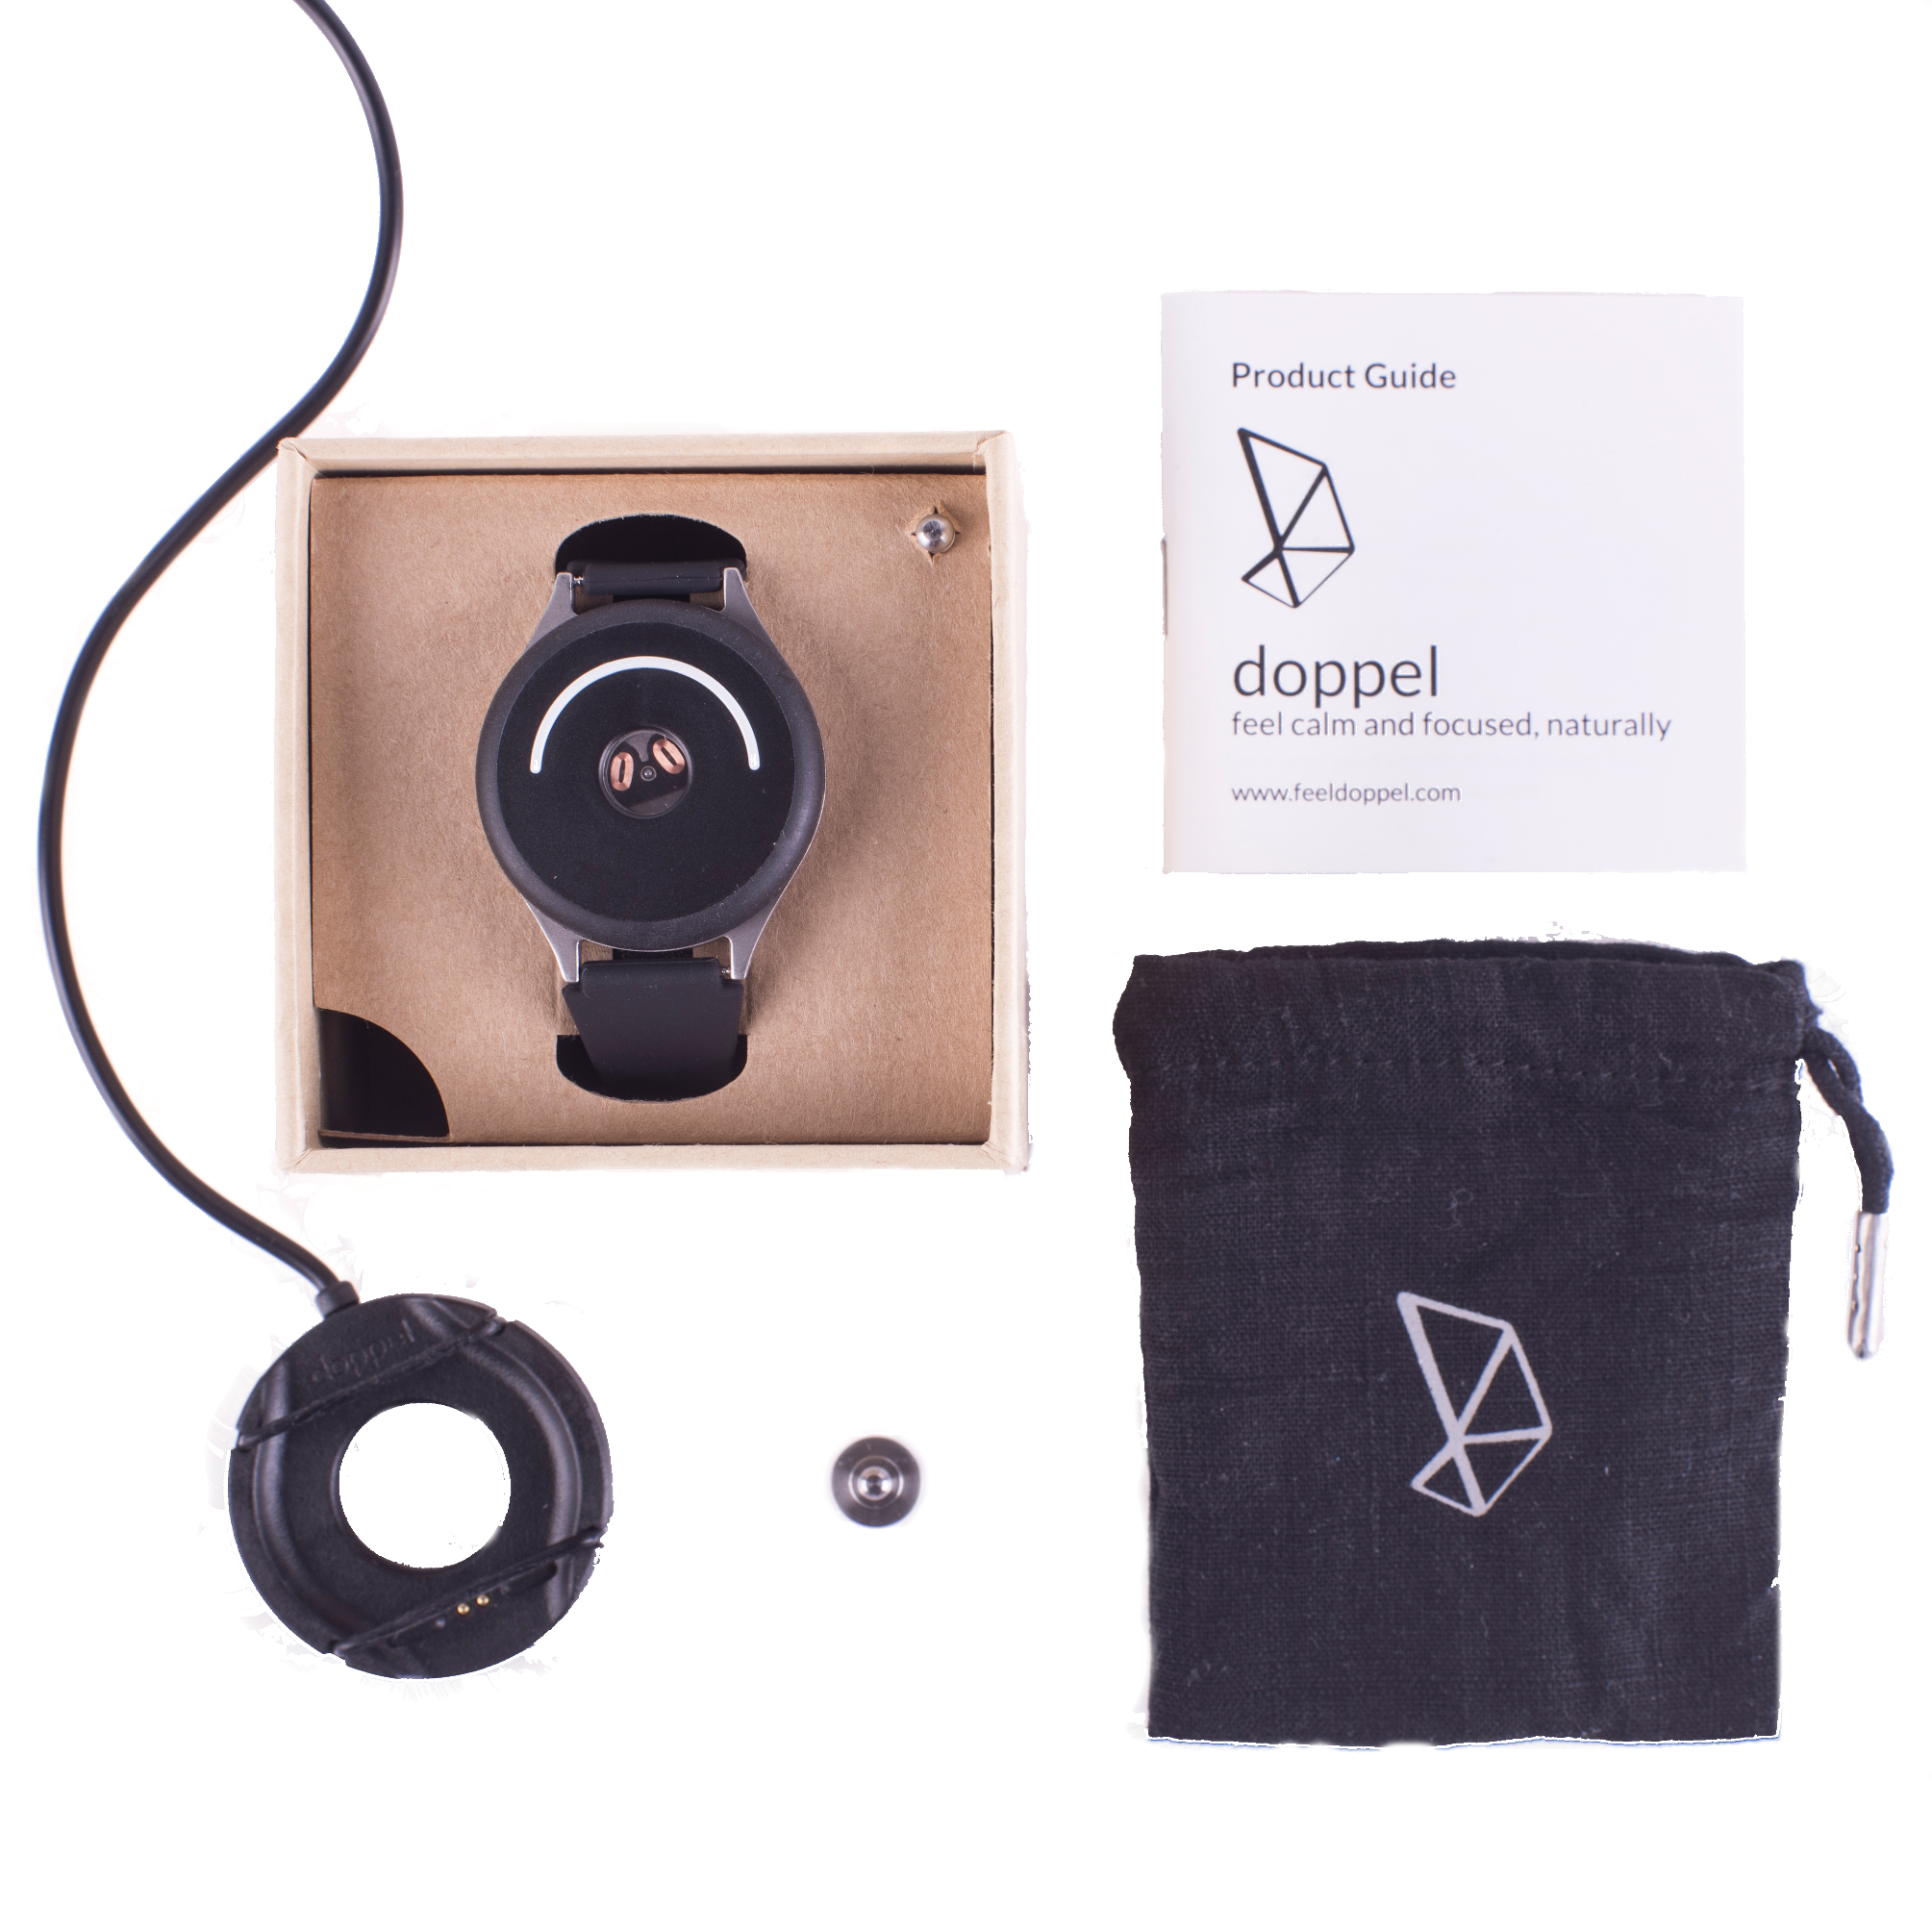 doppel and packaging